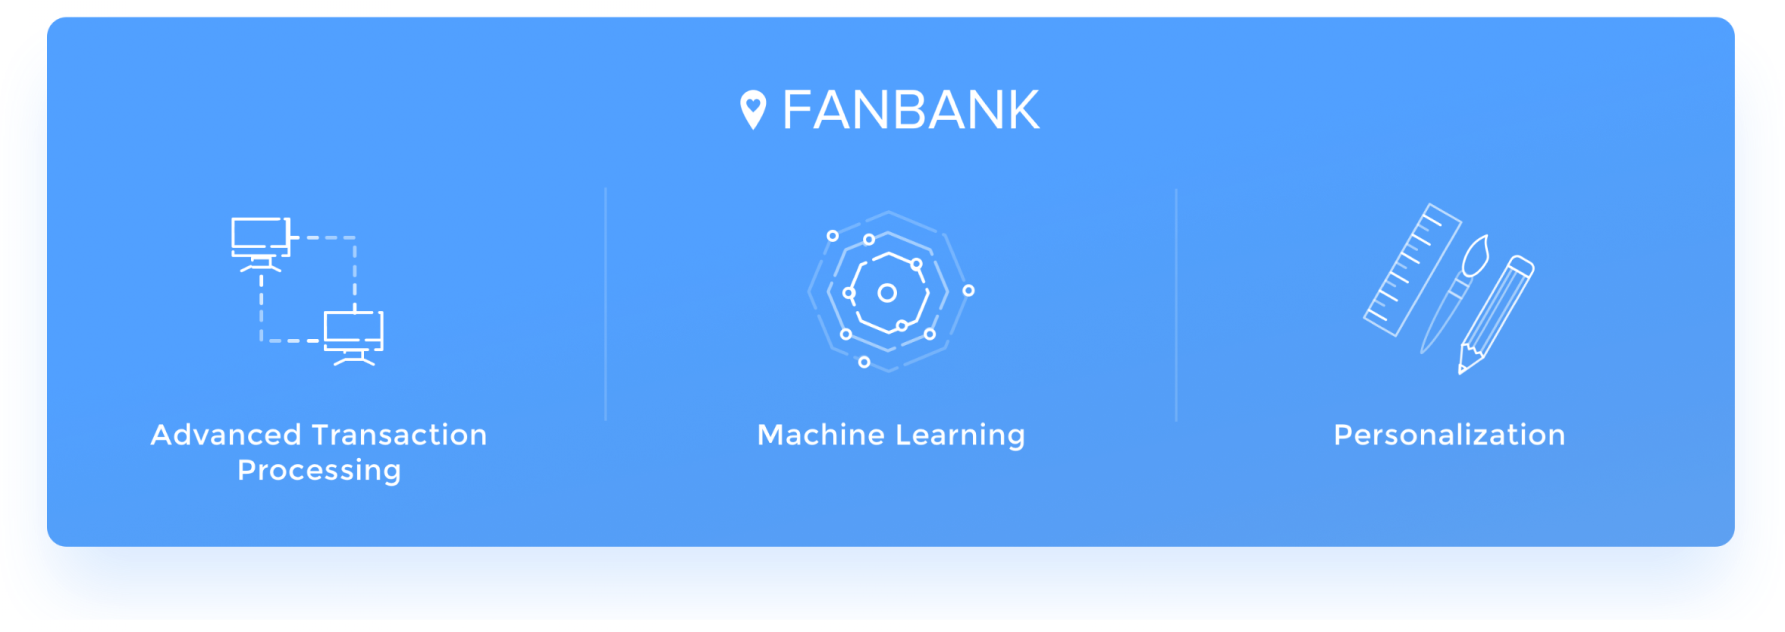 Fanbank technology - Advanced Transaction processing, Machine Learning, Personalization, Payments, Mobile & Geo-fence, Social Media